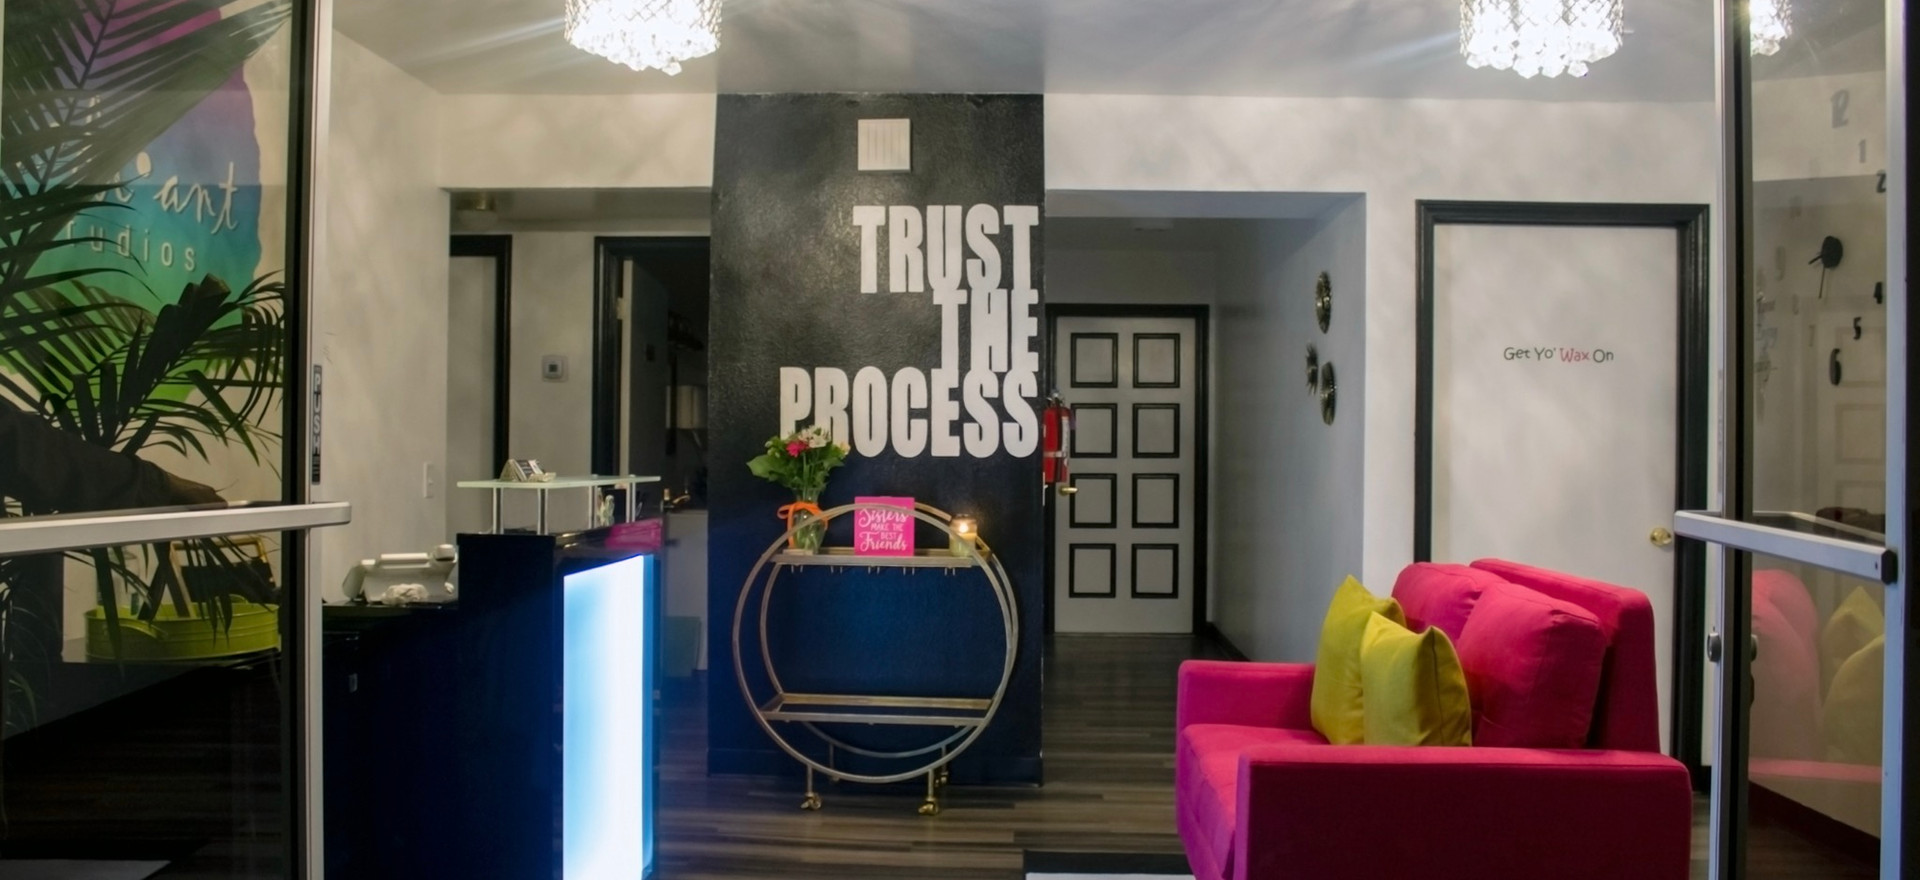 Just Trust Your Process